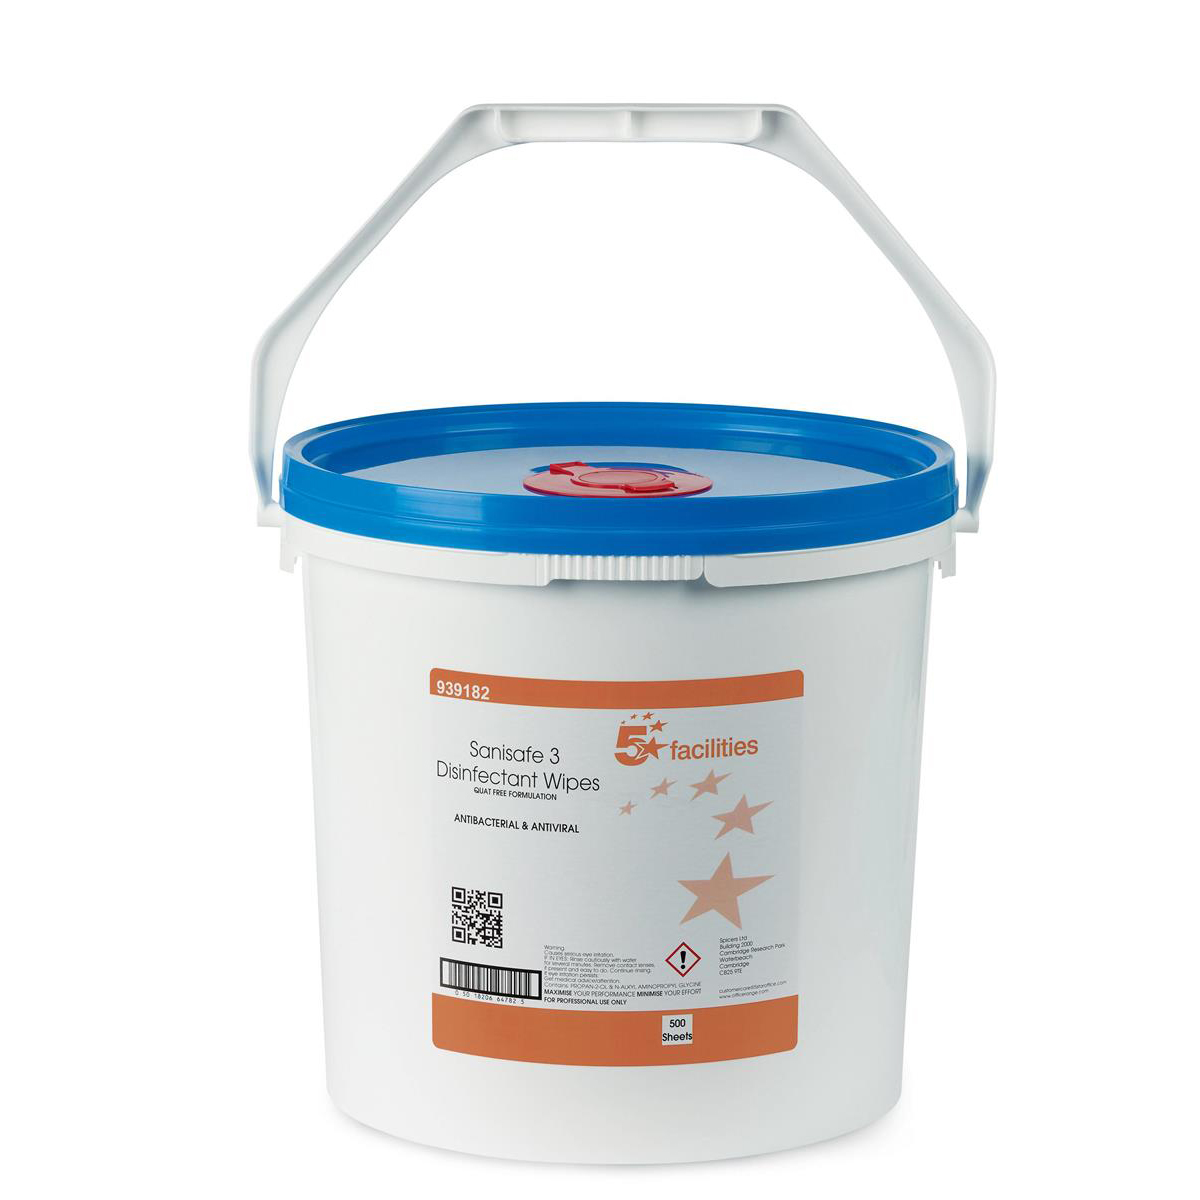 5 Star Facilities Disinfectant Wipes Anti-bacterial PHMB-free BPR Low-residue 20x23cm Bucket 500 Sheets